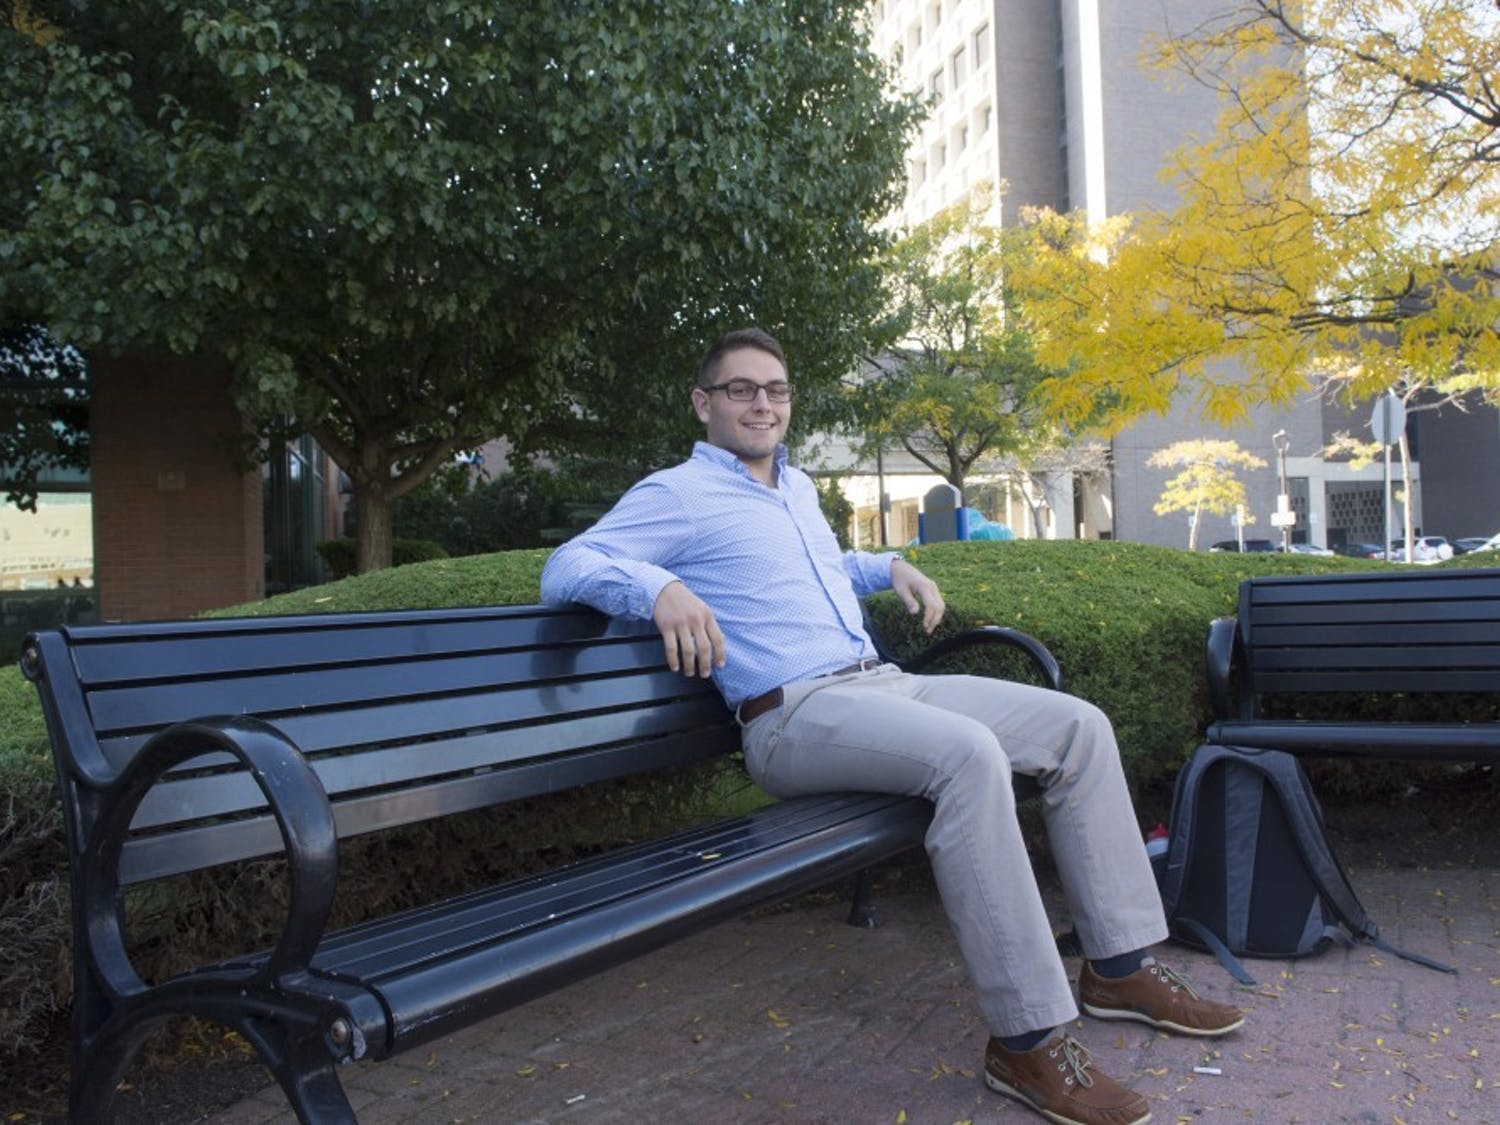 Zachary Shapiro, a senior business administration major, chooses to attend his classes on Jewish holidays. Shapiro said he still wishes he could be with his family during the holidays.